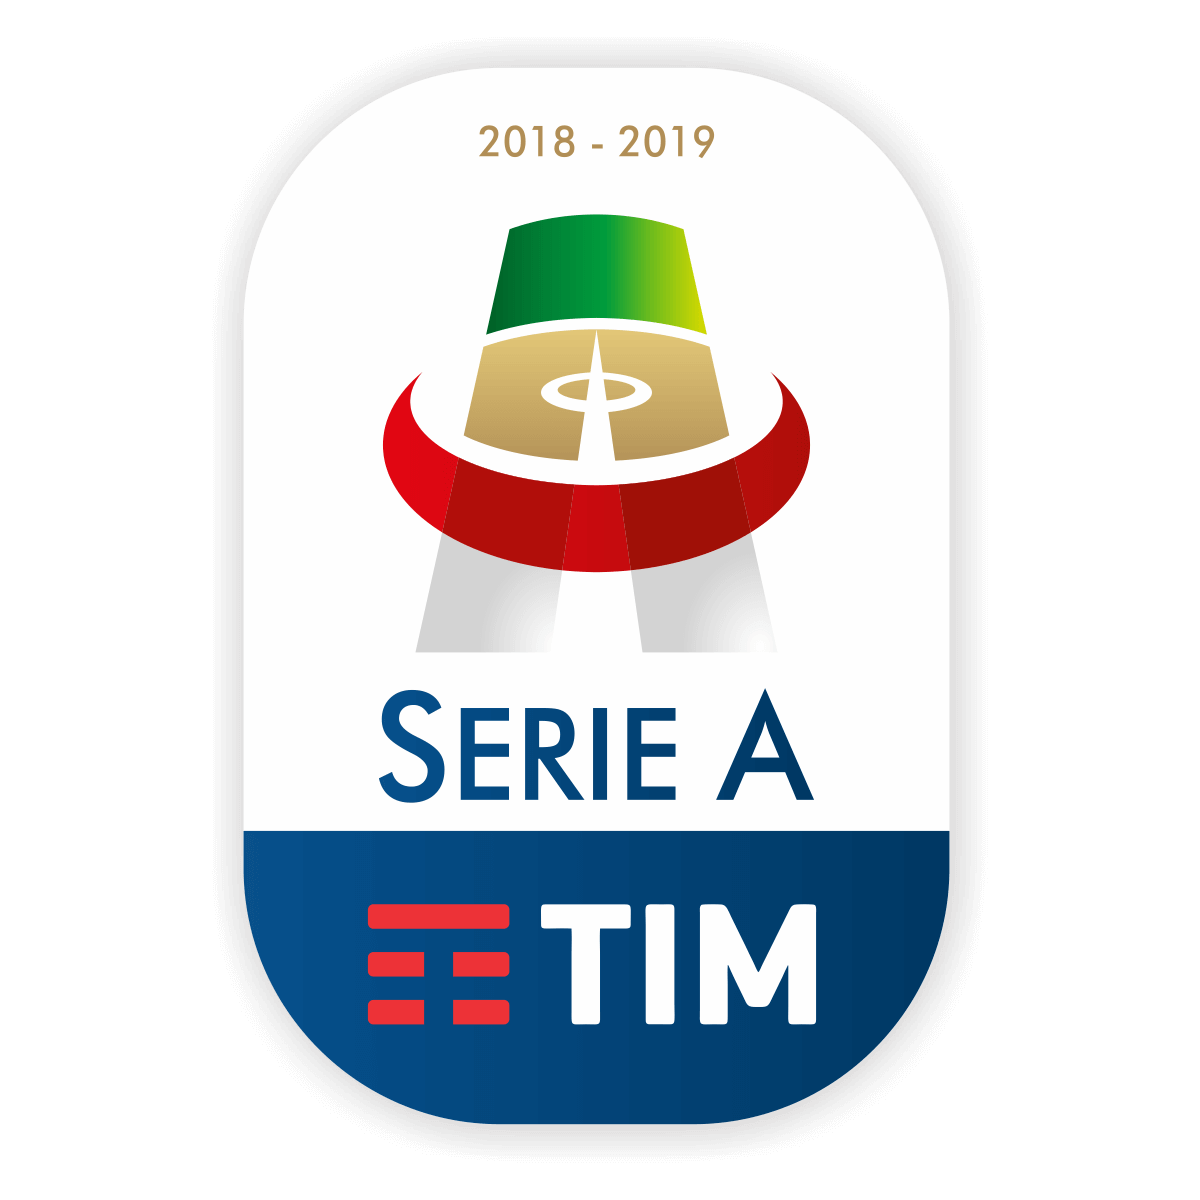 download logo serie a 2018 2019